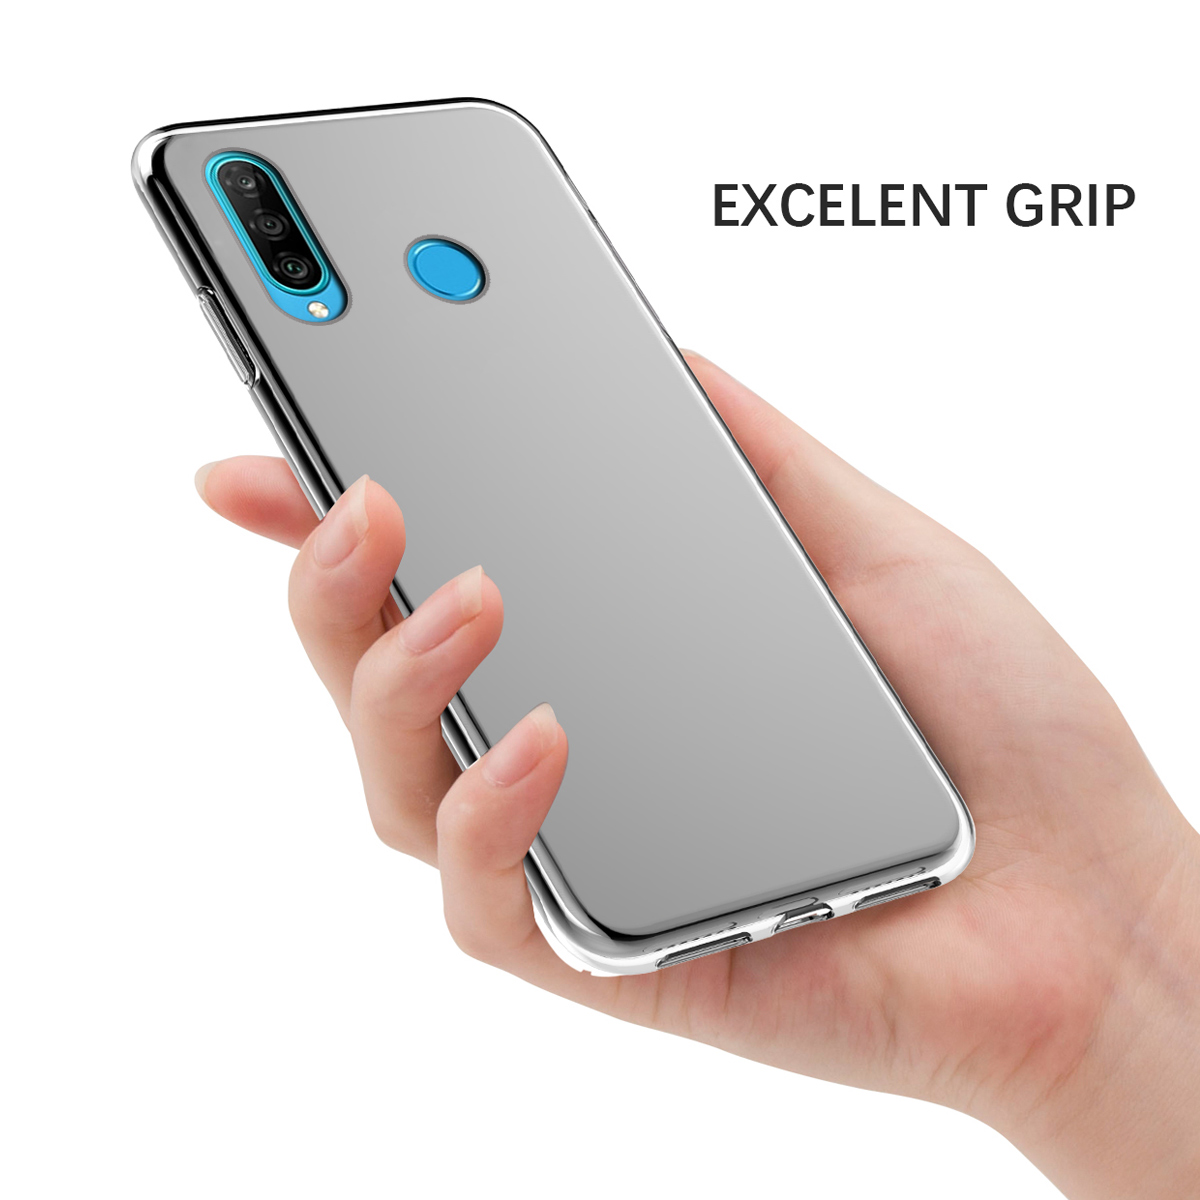 For Asus Zenfone Max Shot ZB634KL Case Transparent Soft TPU Silicone Cover For Asus Zenfone Max Pro M2 ZB631KL ZB633KL Case Slim in Fitted Cases from Cellphones Telecommunications